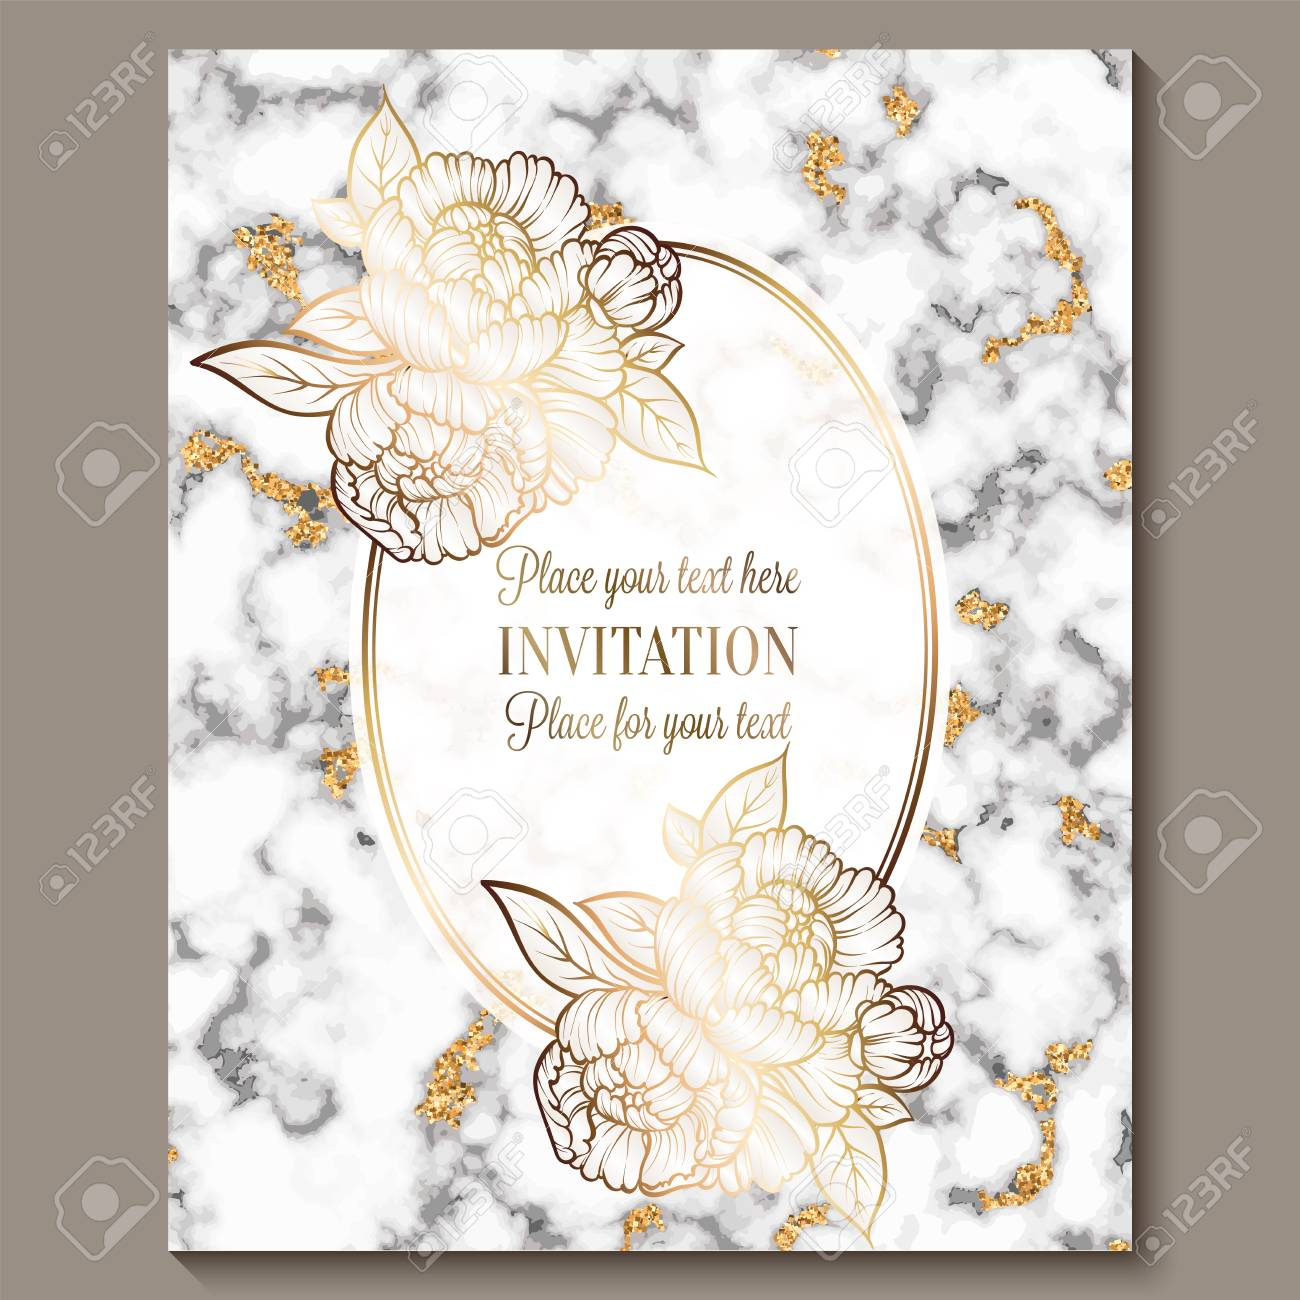 Luxury And Elegant Wedding Invitation Cards With Marble Texture